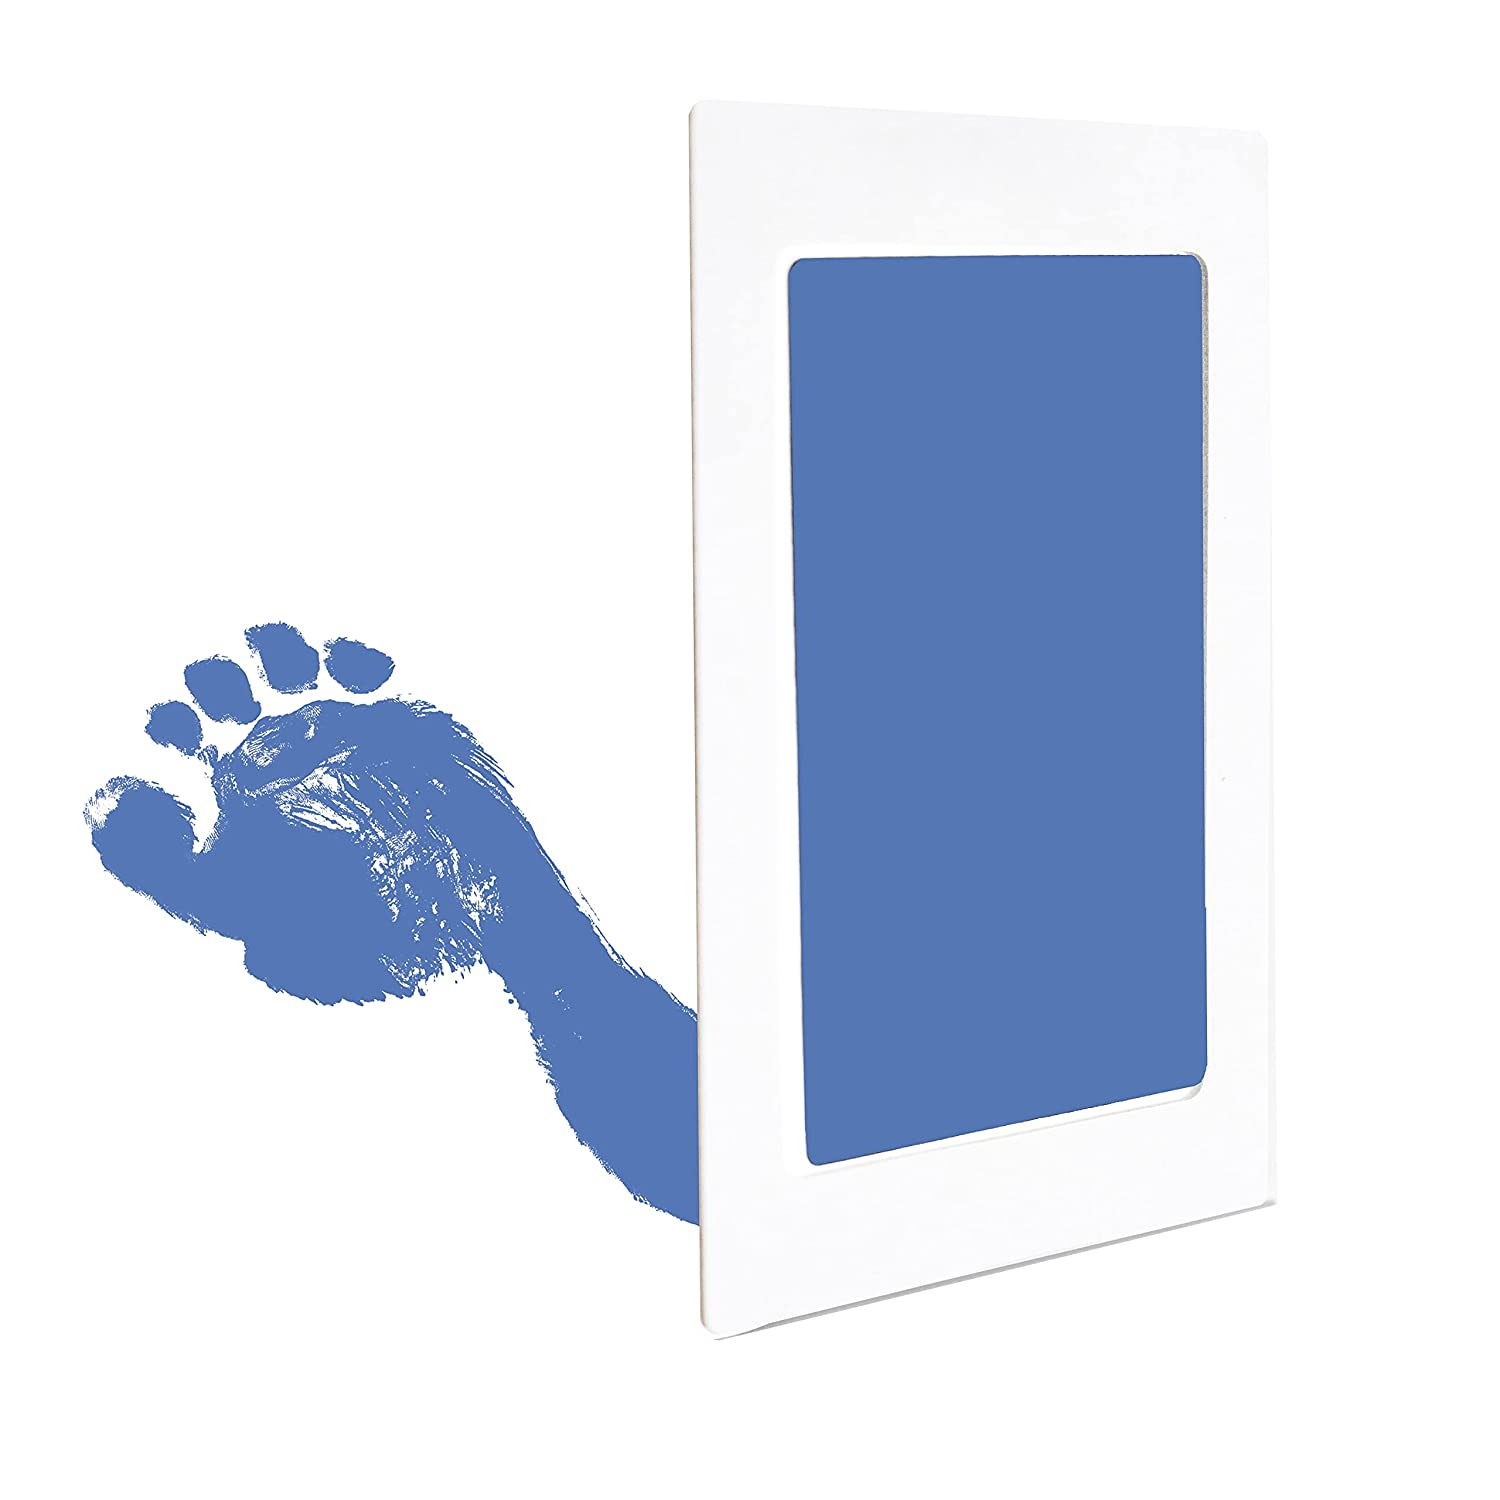 Clean Touch Ink Pad for Baby Handprints and Footprints – Inkless Infant Hand & Foot Stamp – Safe for Babies, Doesn't Touch Skin – Perfect Family Memory or Gift – Blue Print Kit by Tiny Gifts